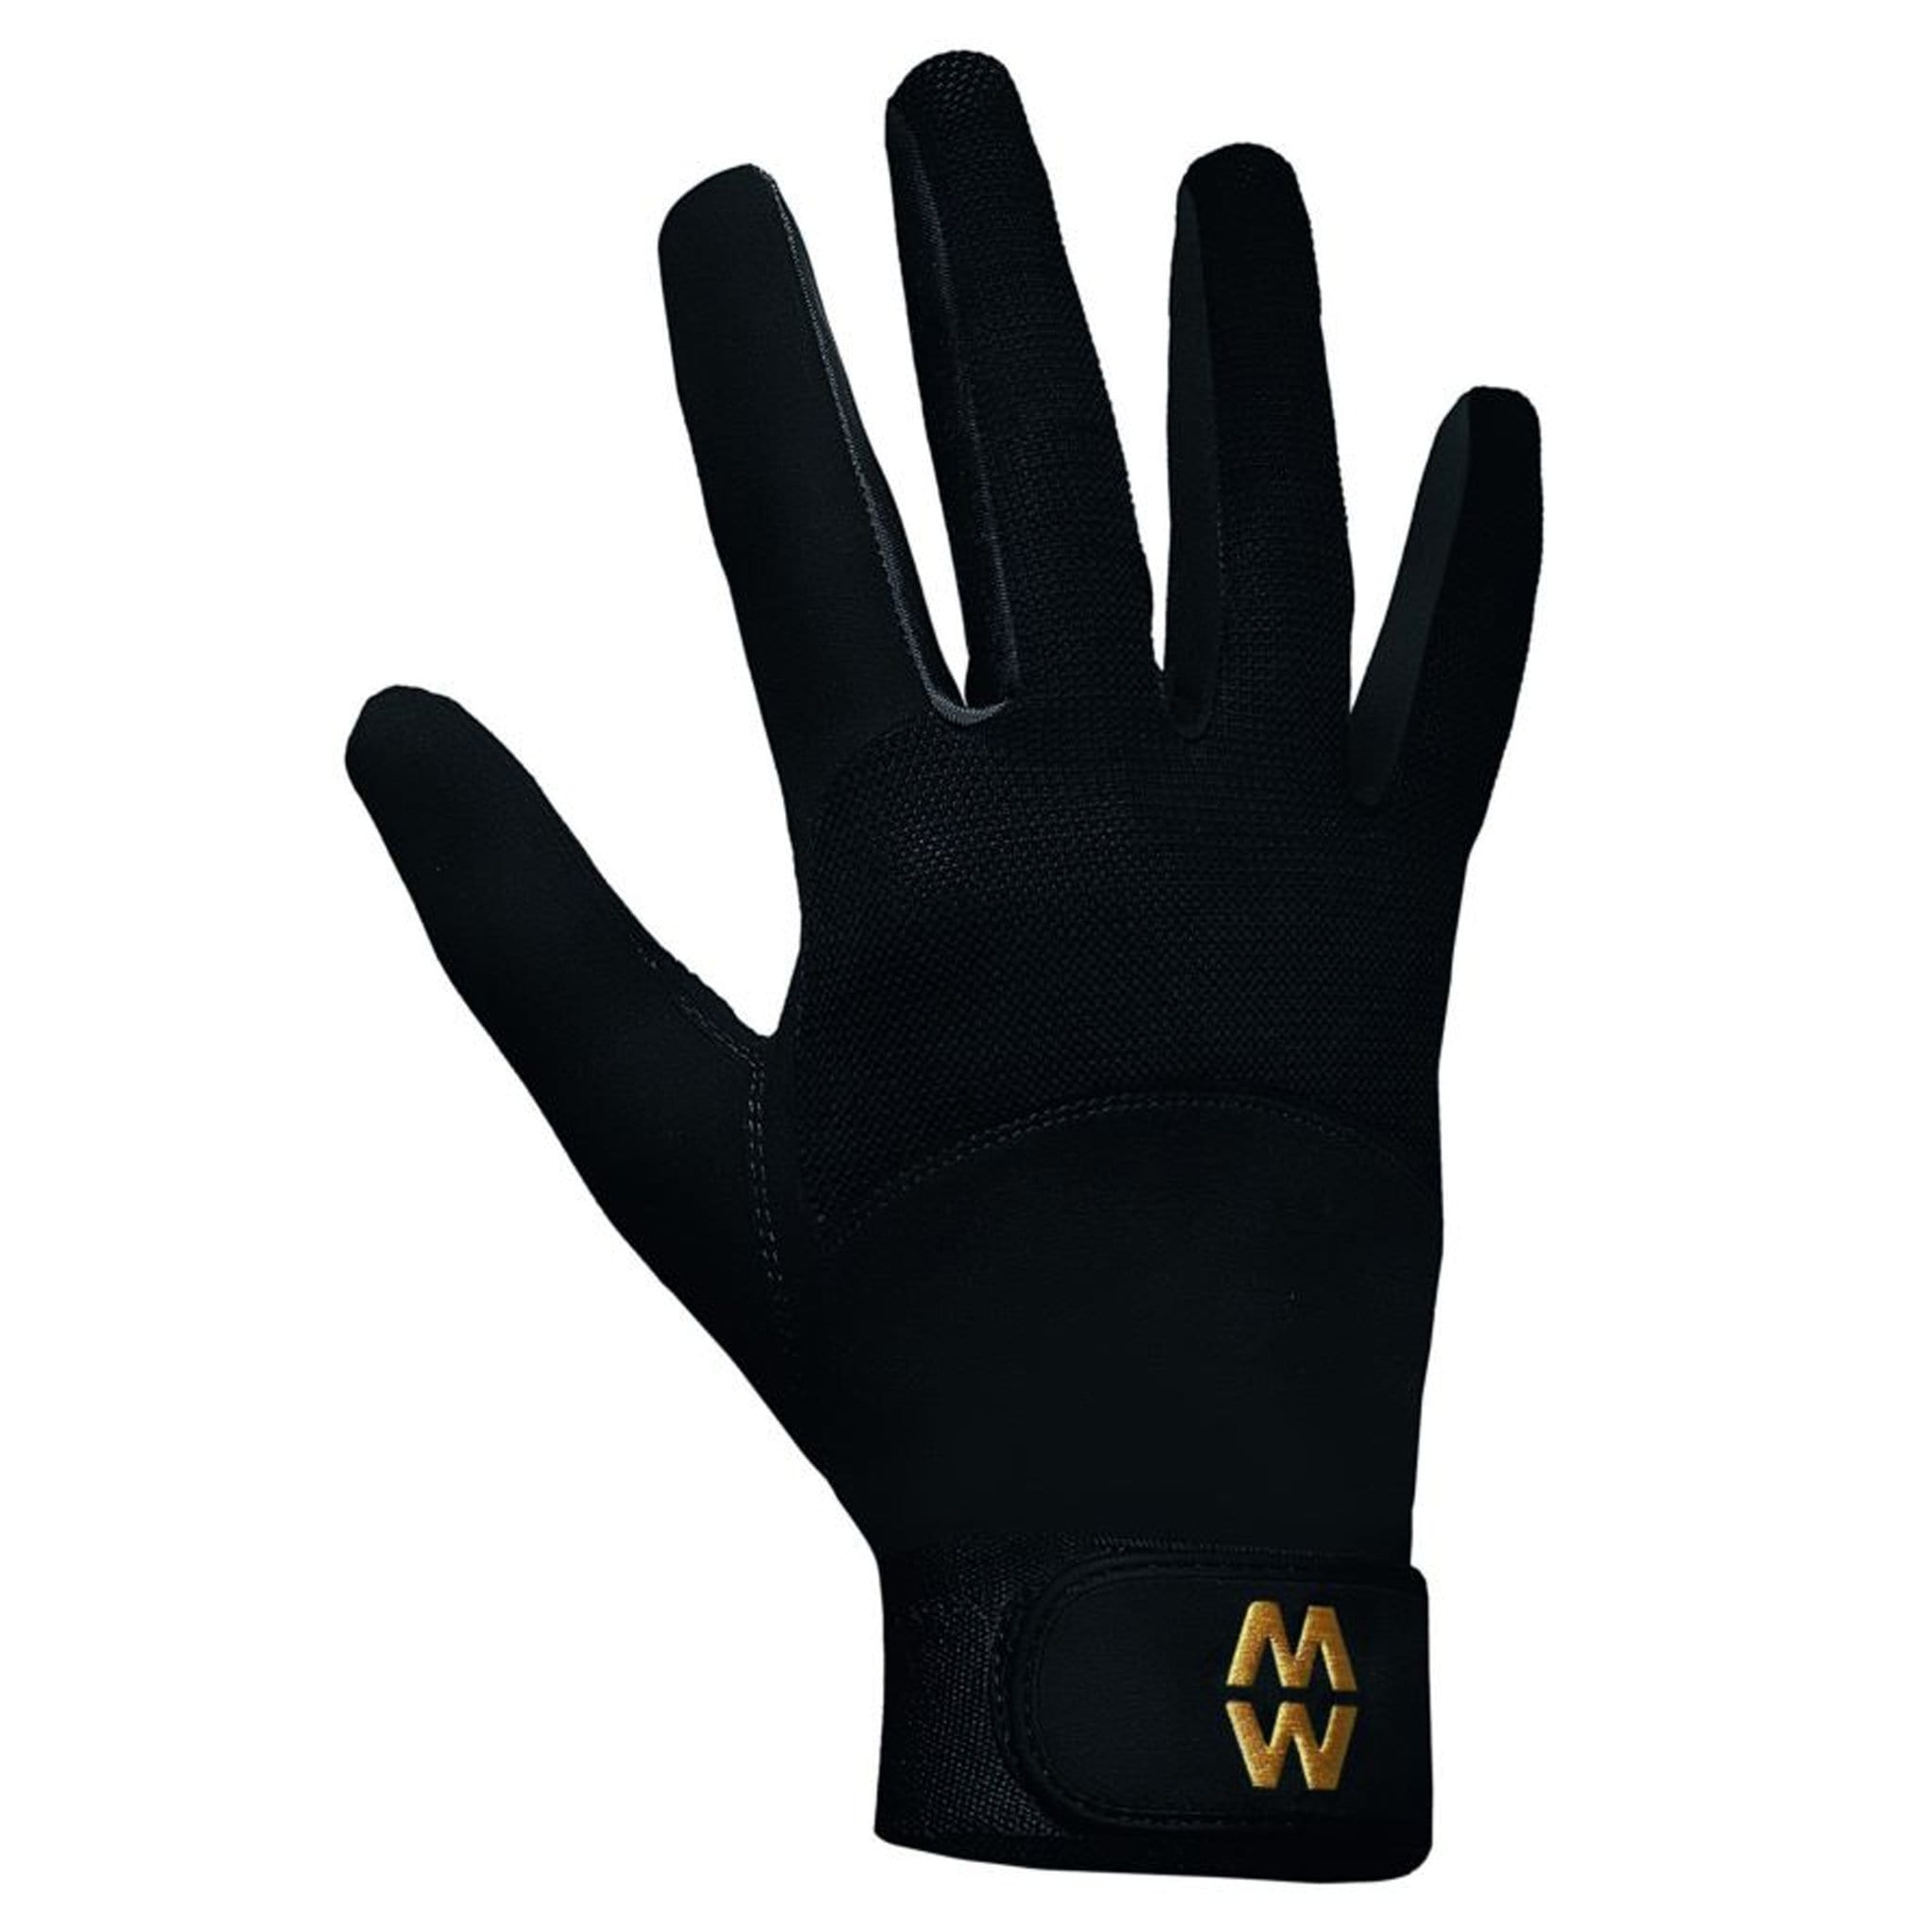 MacWet Mesh Long Cuff Gloves Black 2500.